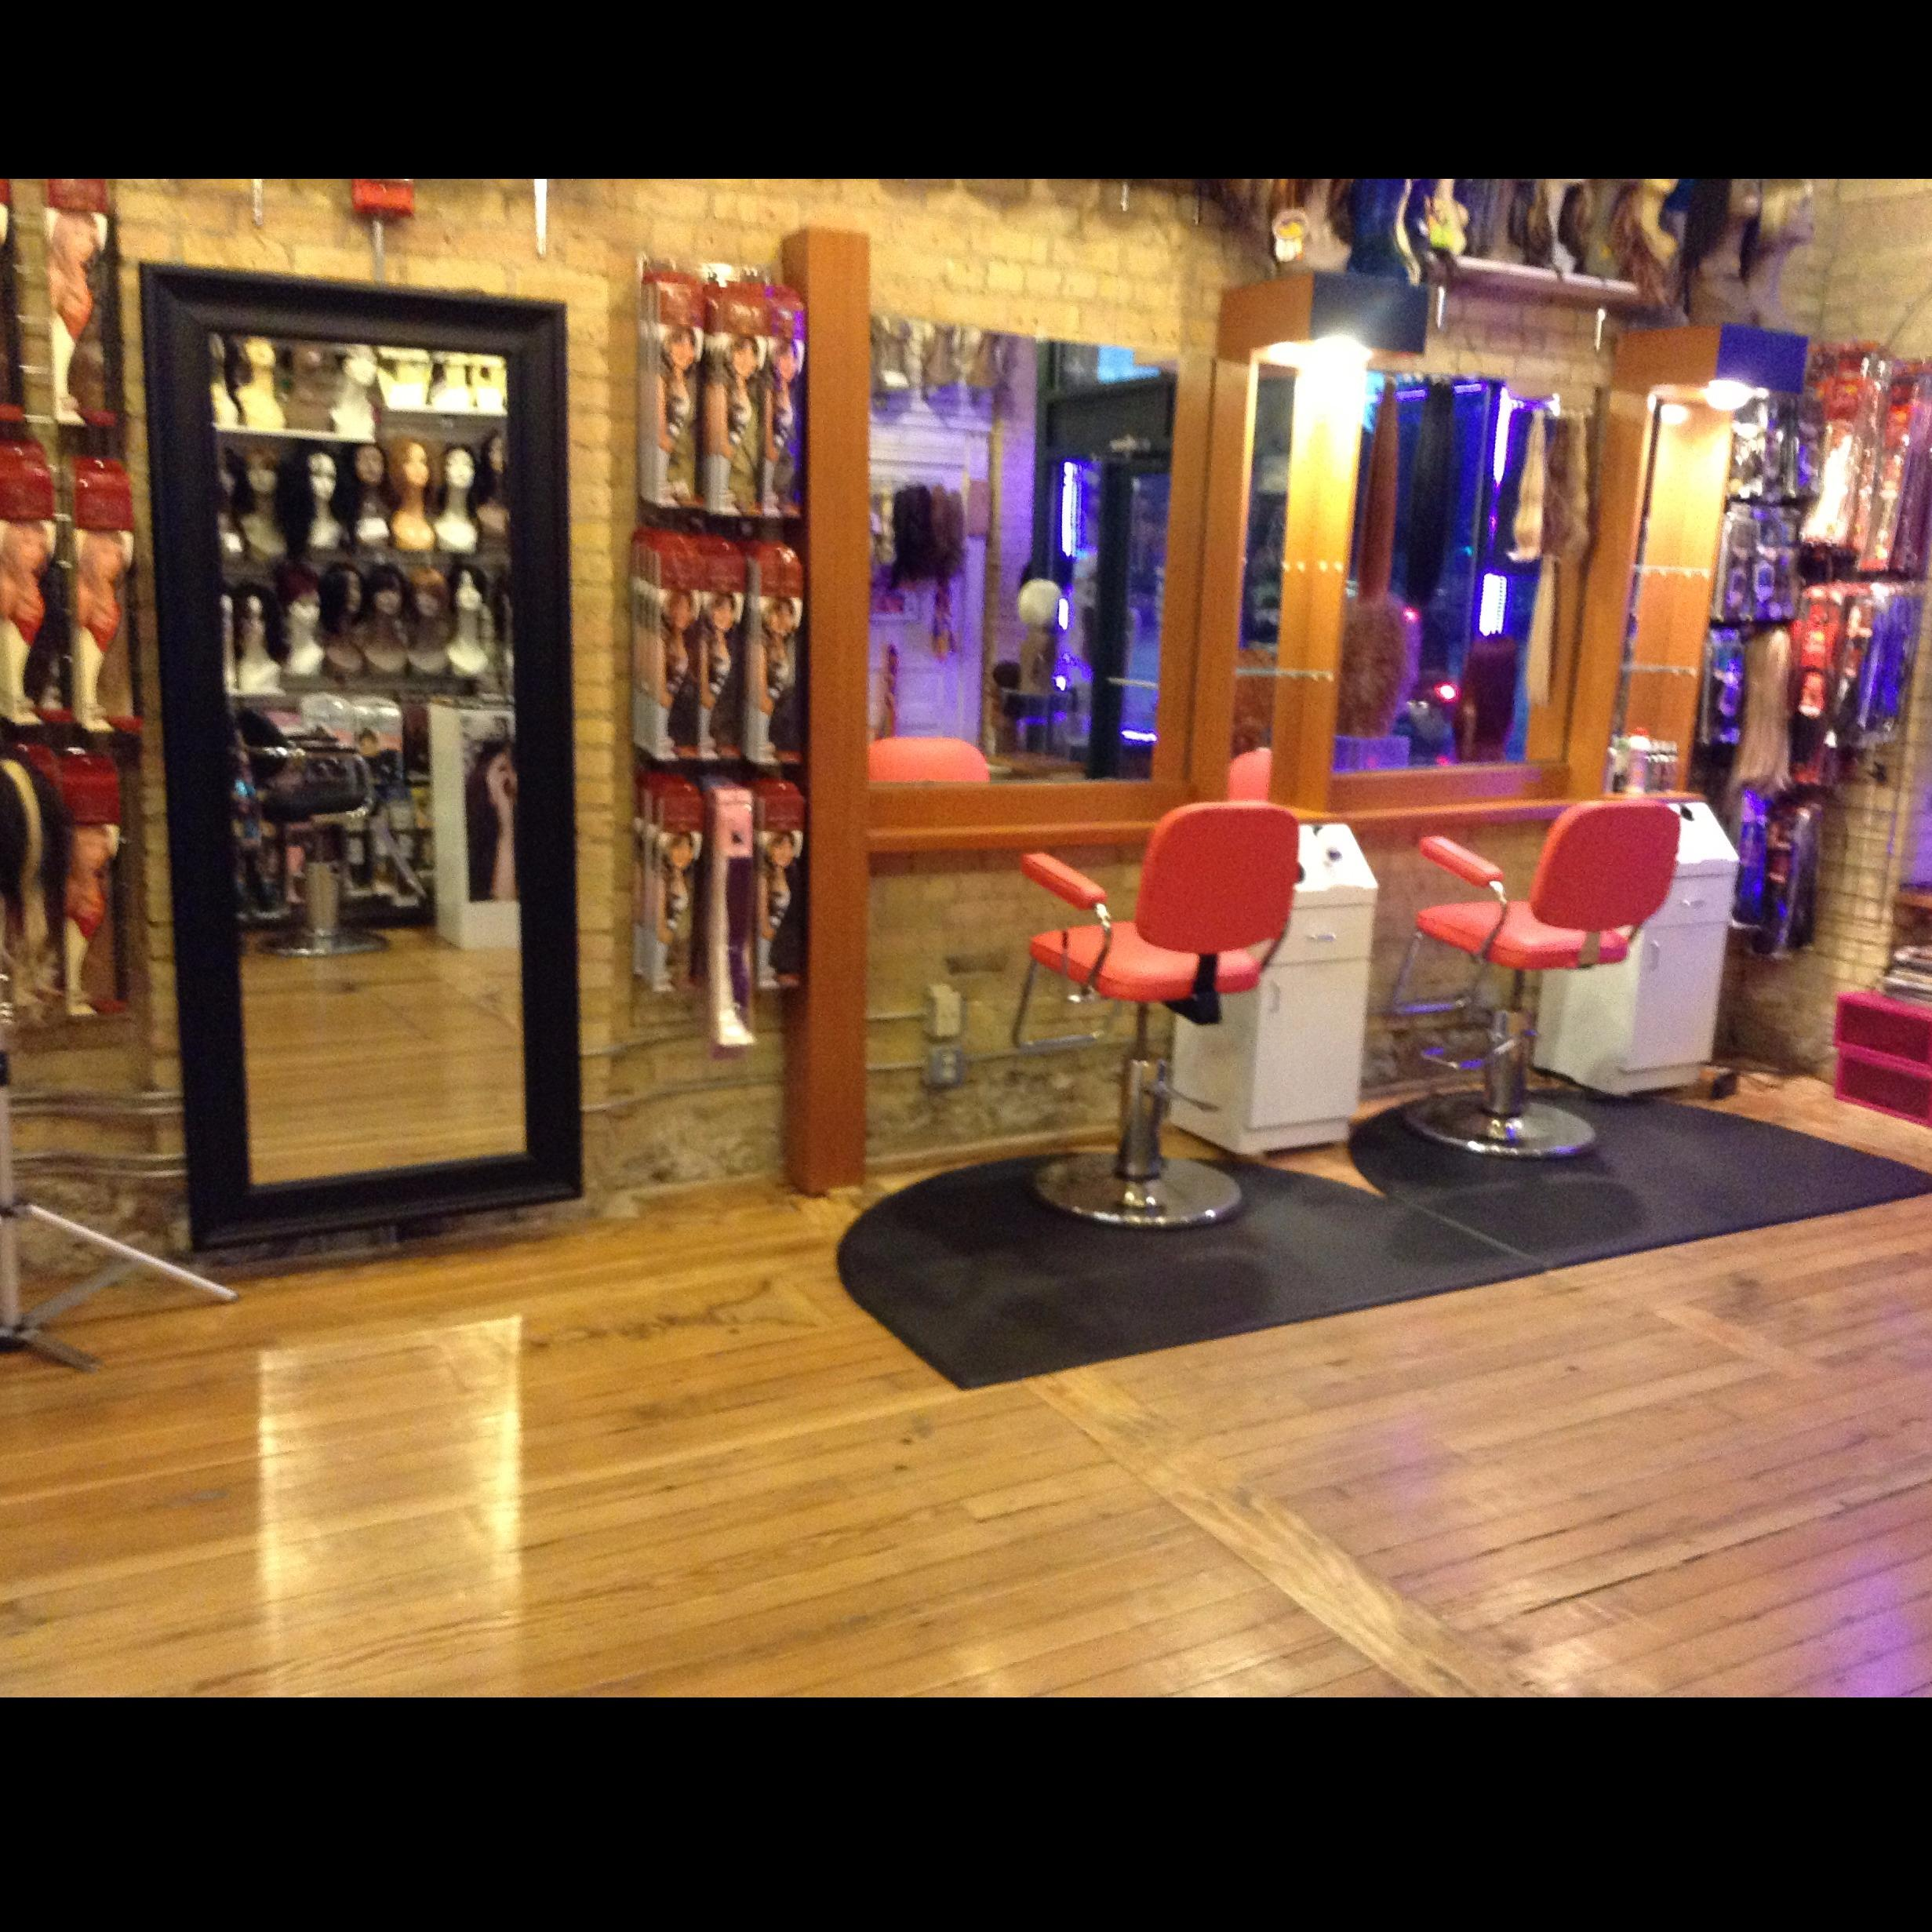 Extensions hair and wigs 2920 bryant avenue south suite - Hair salons minnesota ...